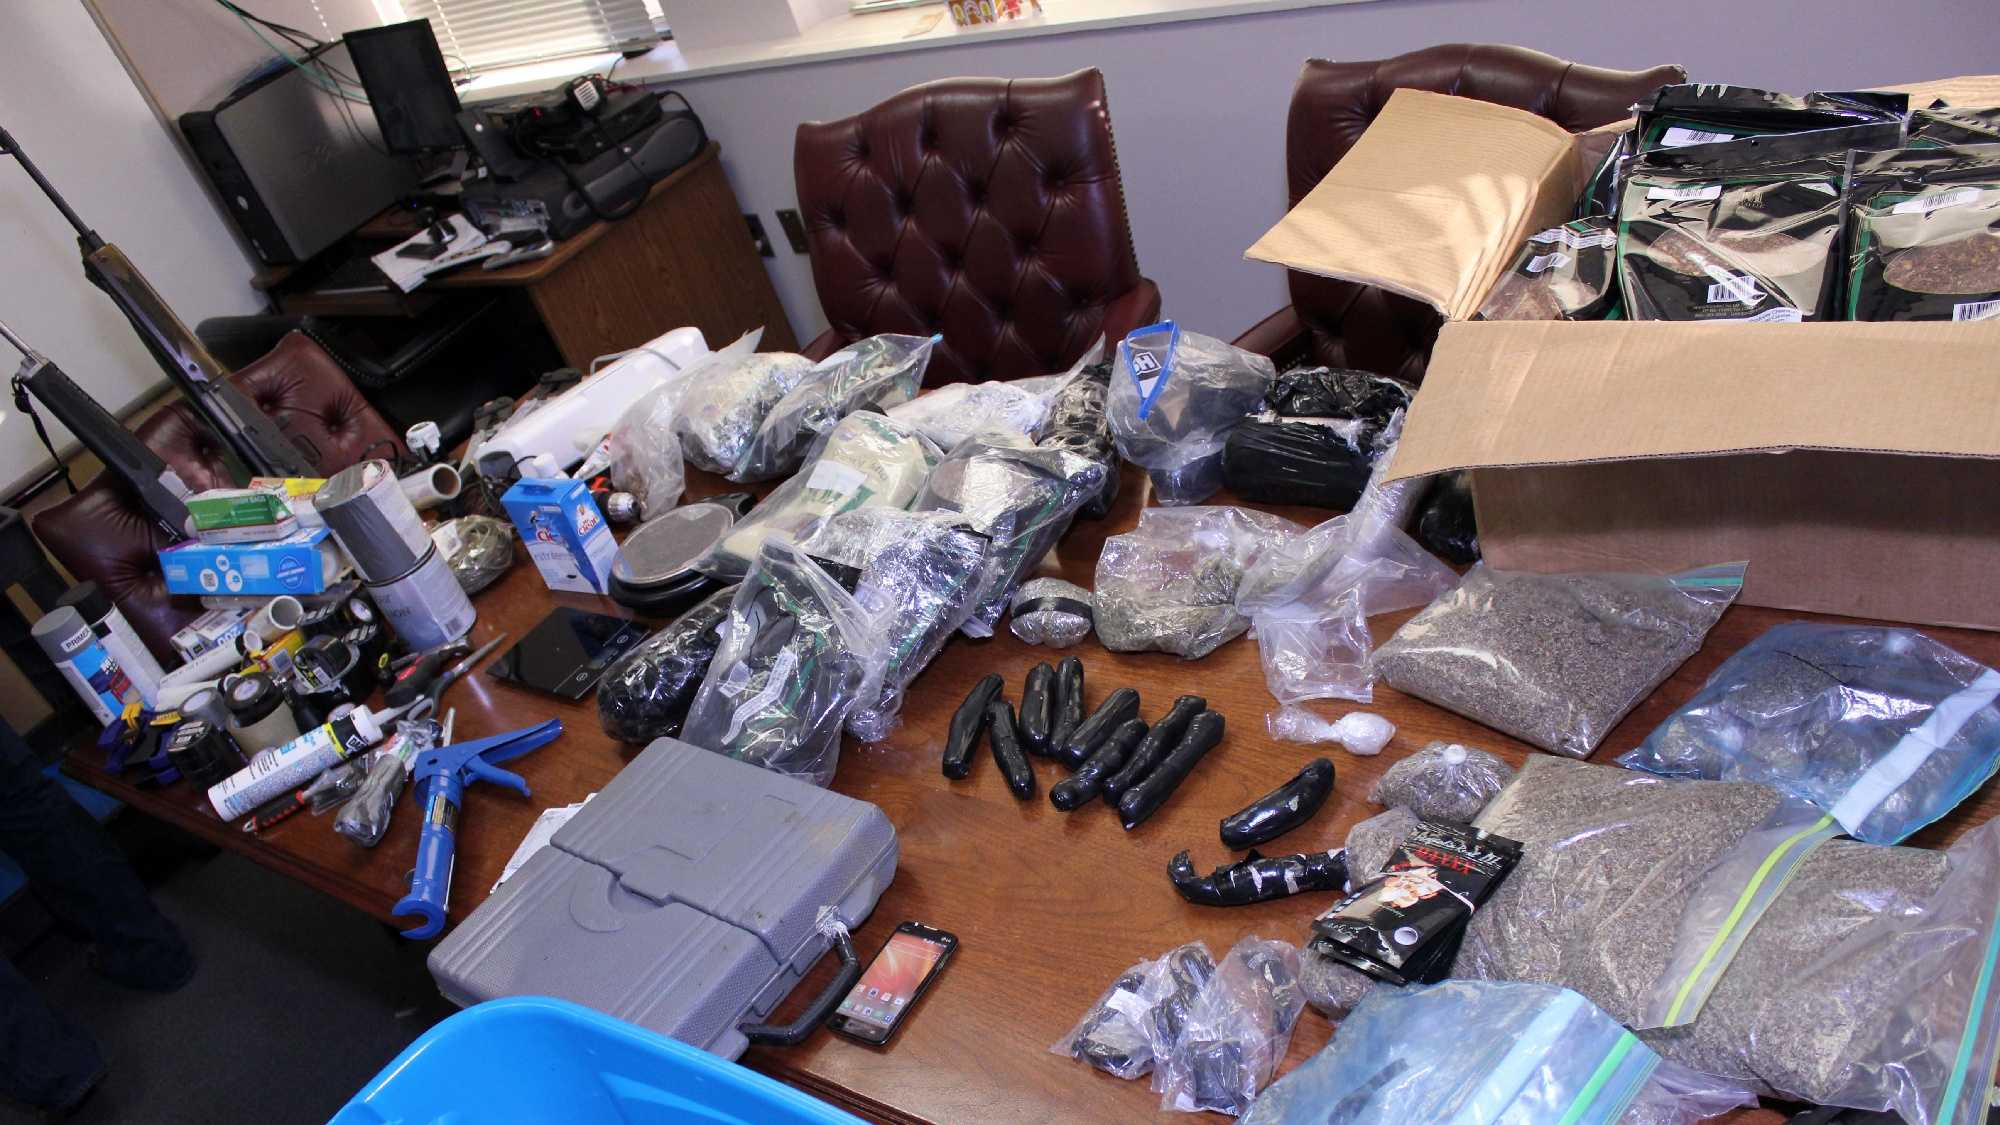 For months, a state inmate has allegedly been paying several people, including a corrections officer, to smuggle contraband, including cell phones, chargers, spice, tobacco and other items into prisons, according to a Mississippi Department of Corrections' investigation.